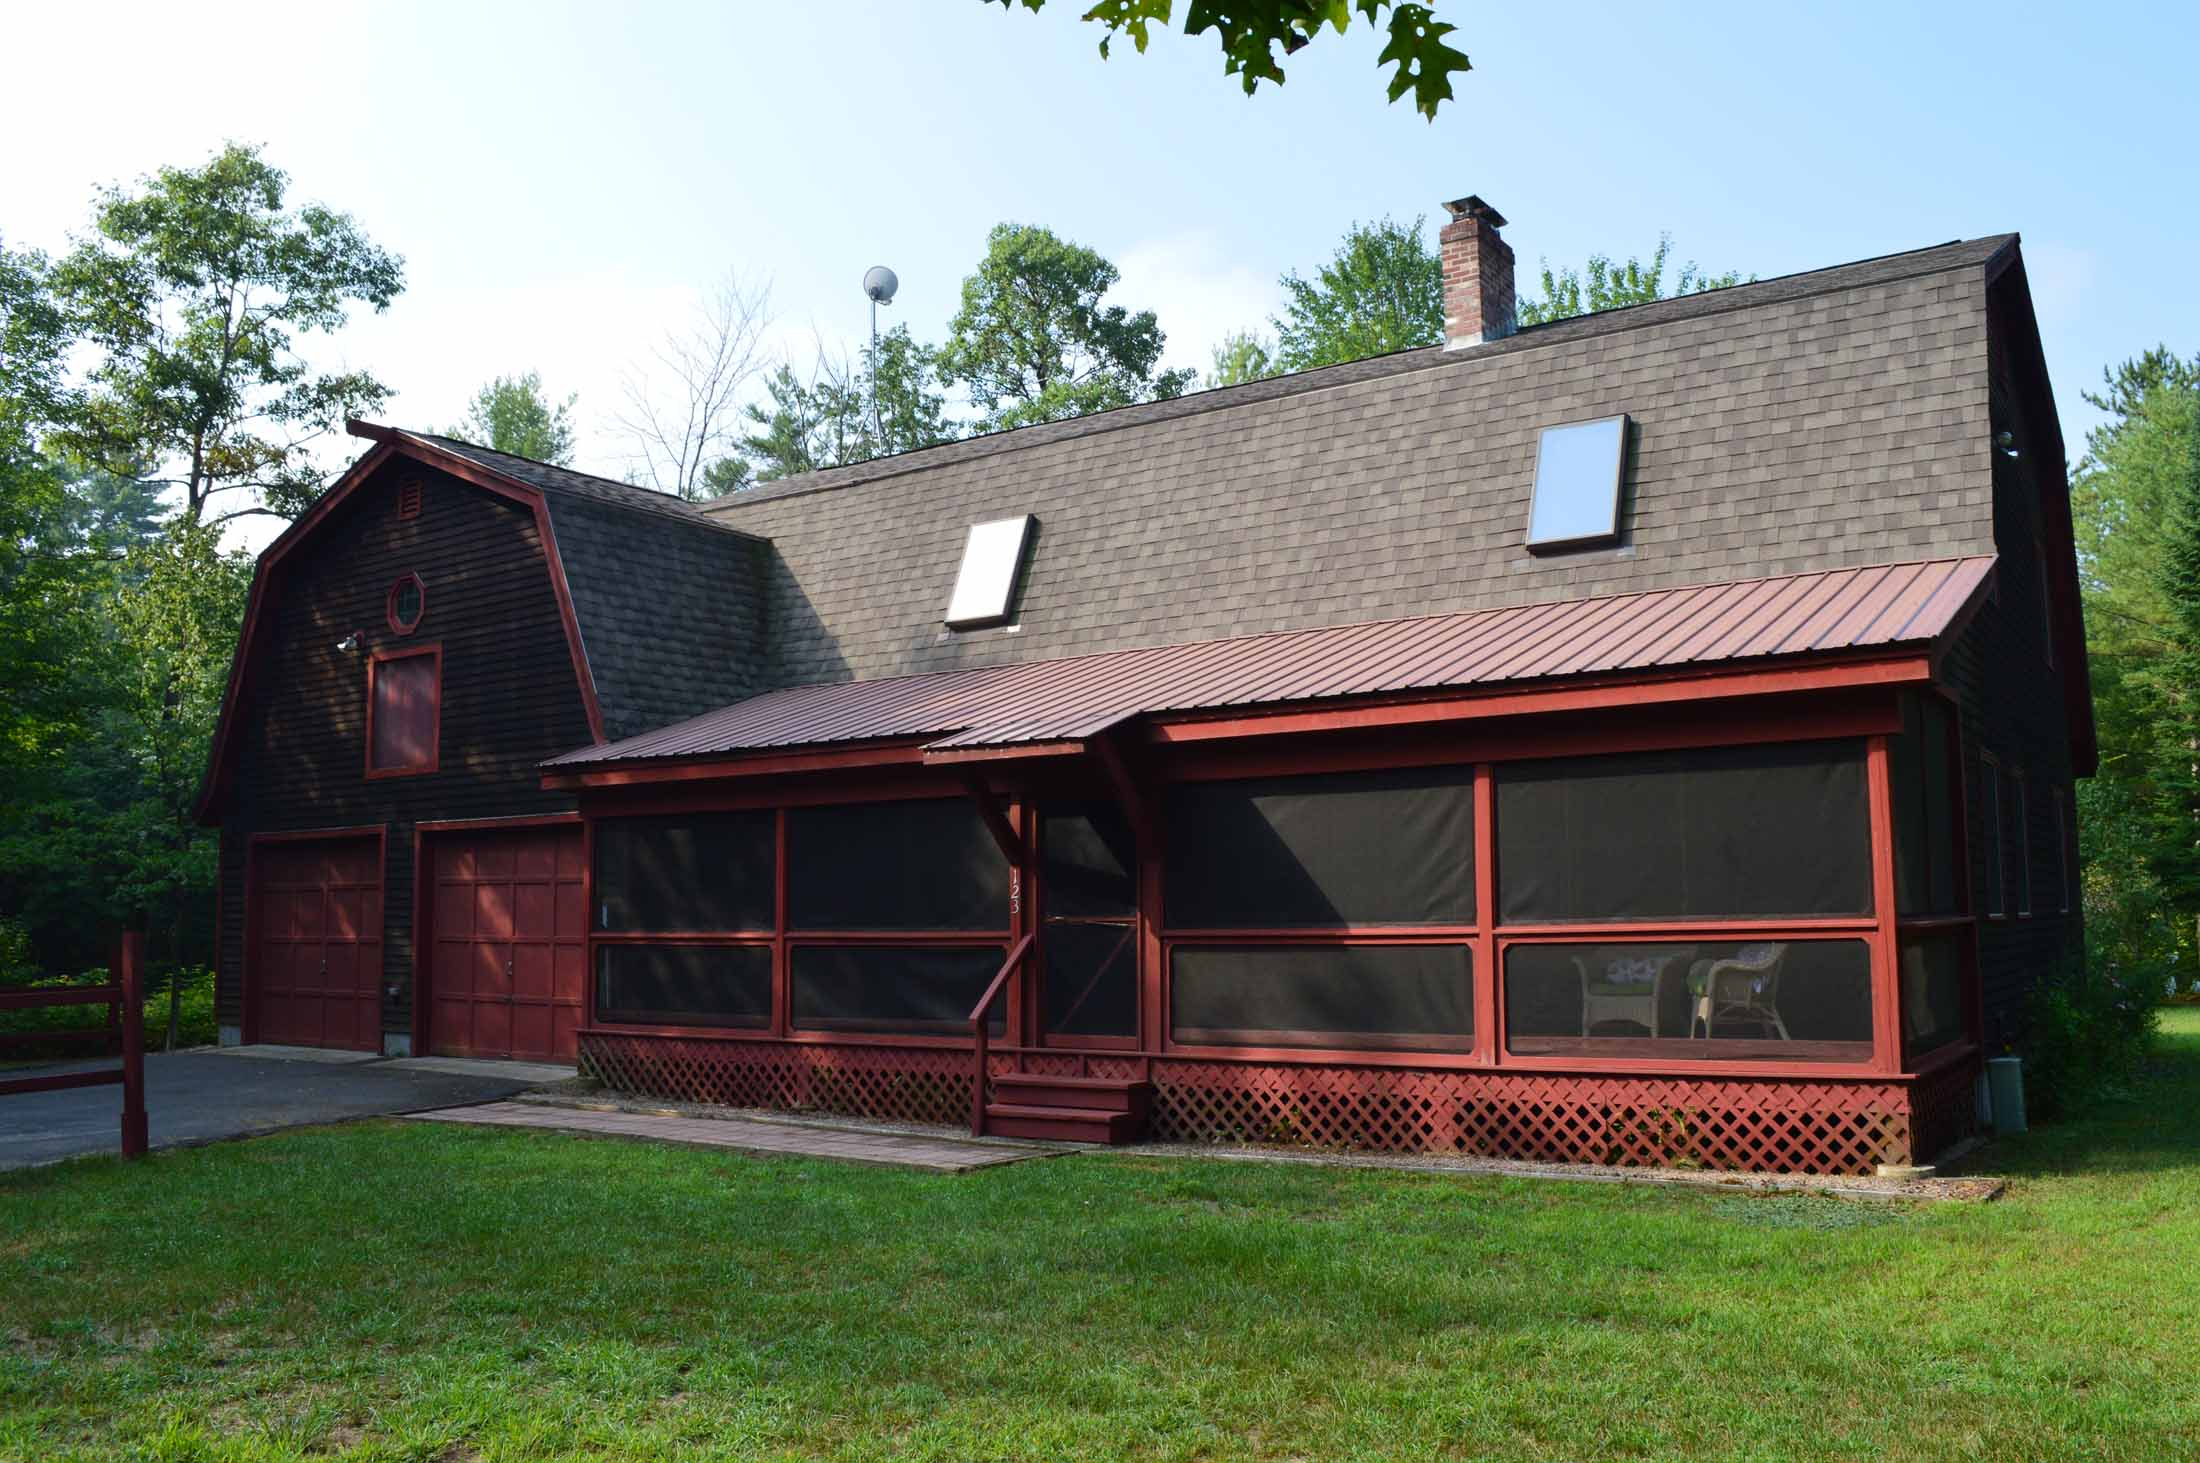 Single Family Home for Sale at 123 Green Mountain Road, Effingham 123 Green Mountain Rd Effingham, New Hampshire, 03882 United States